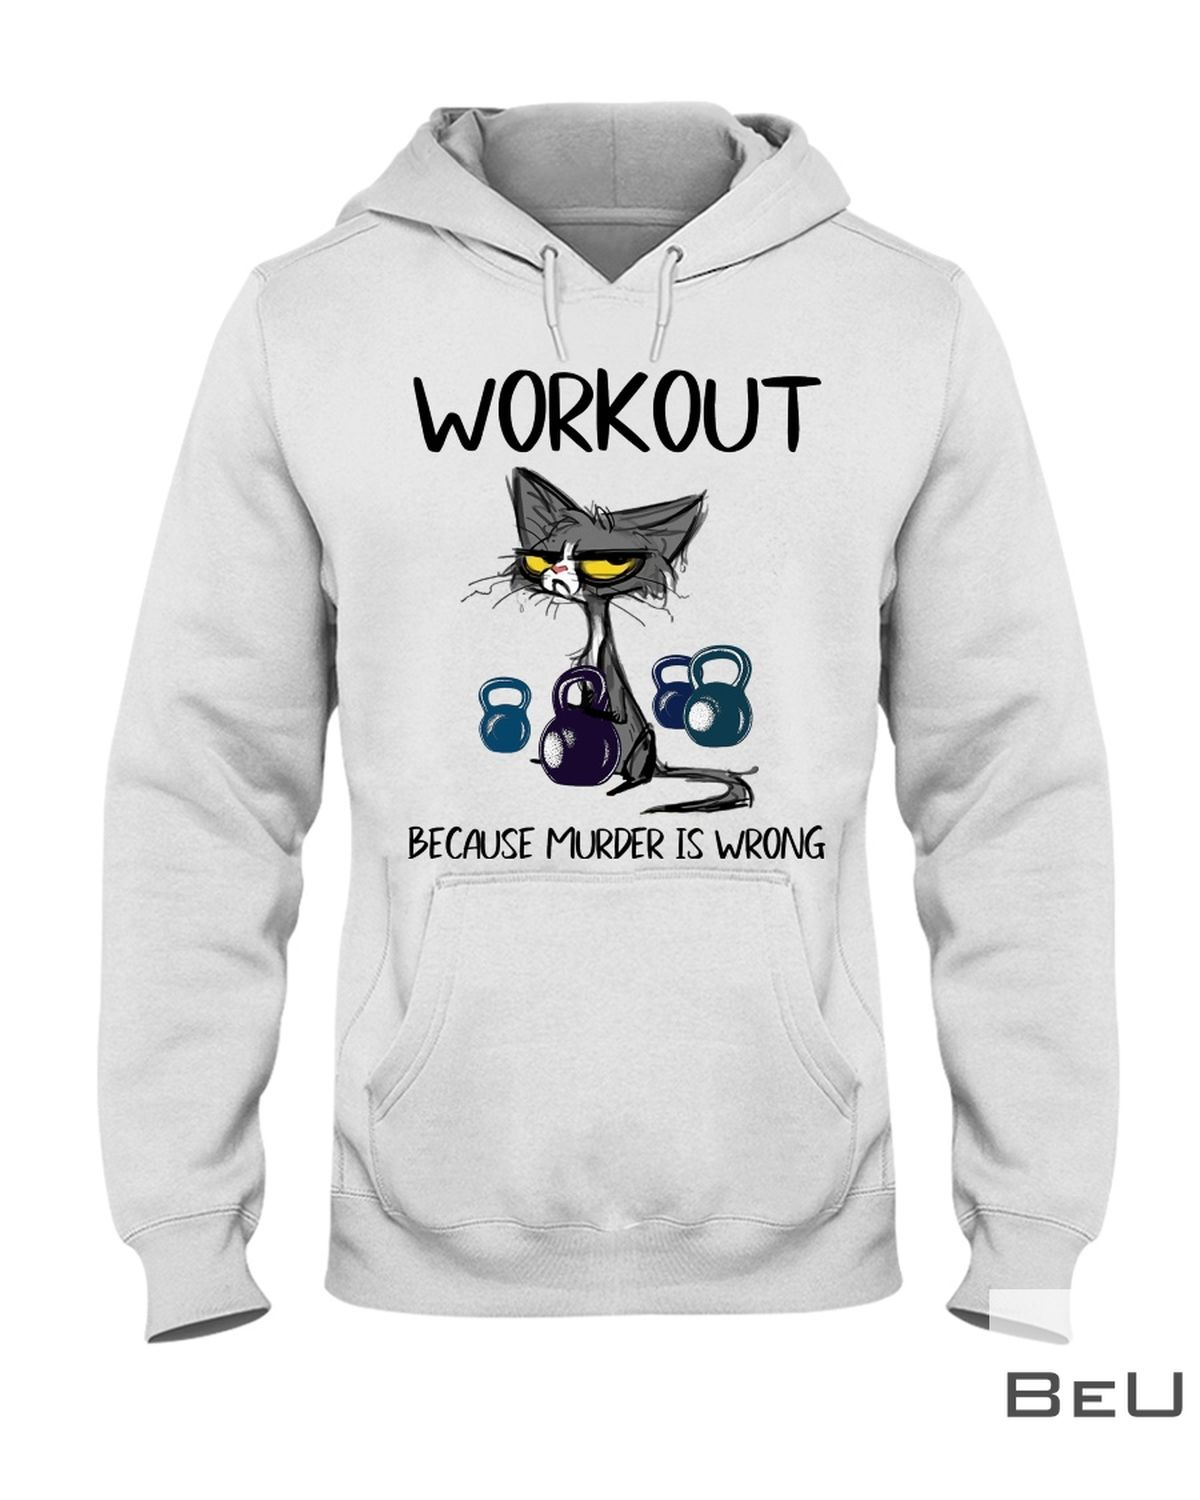 Workout because Murder is wrong shirtx